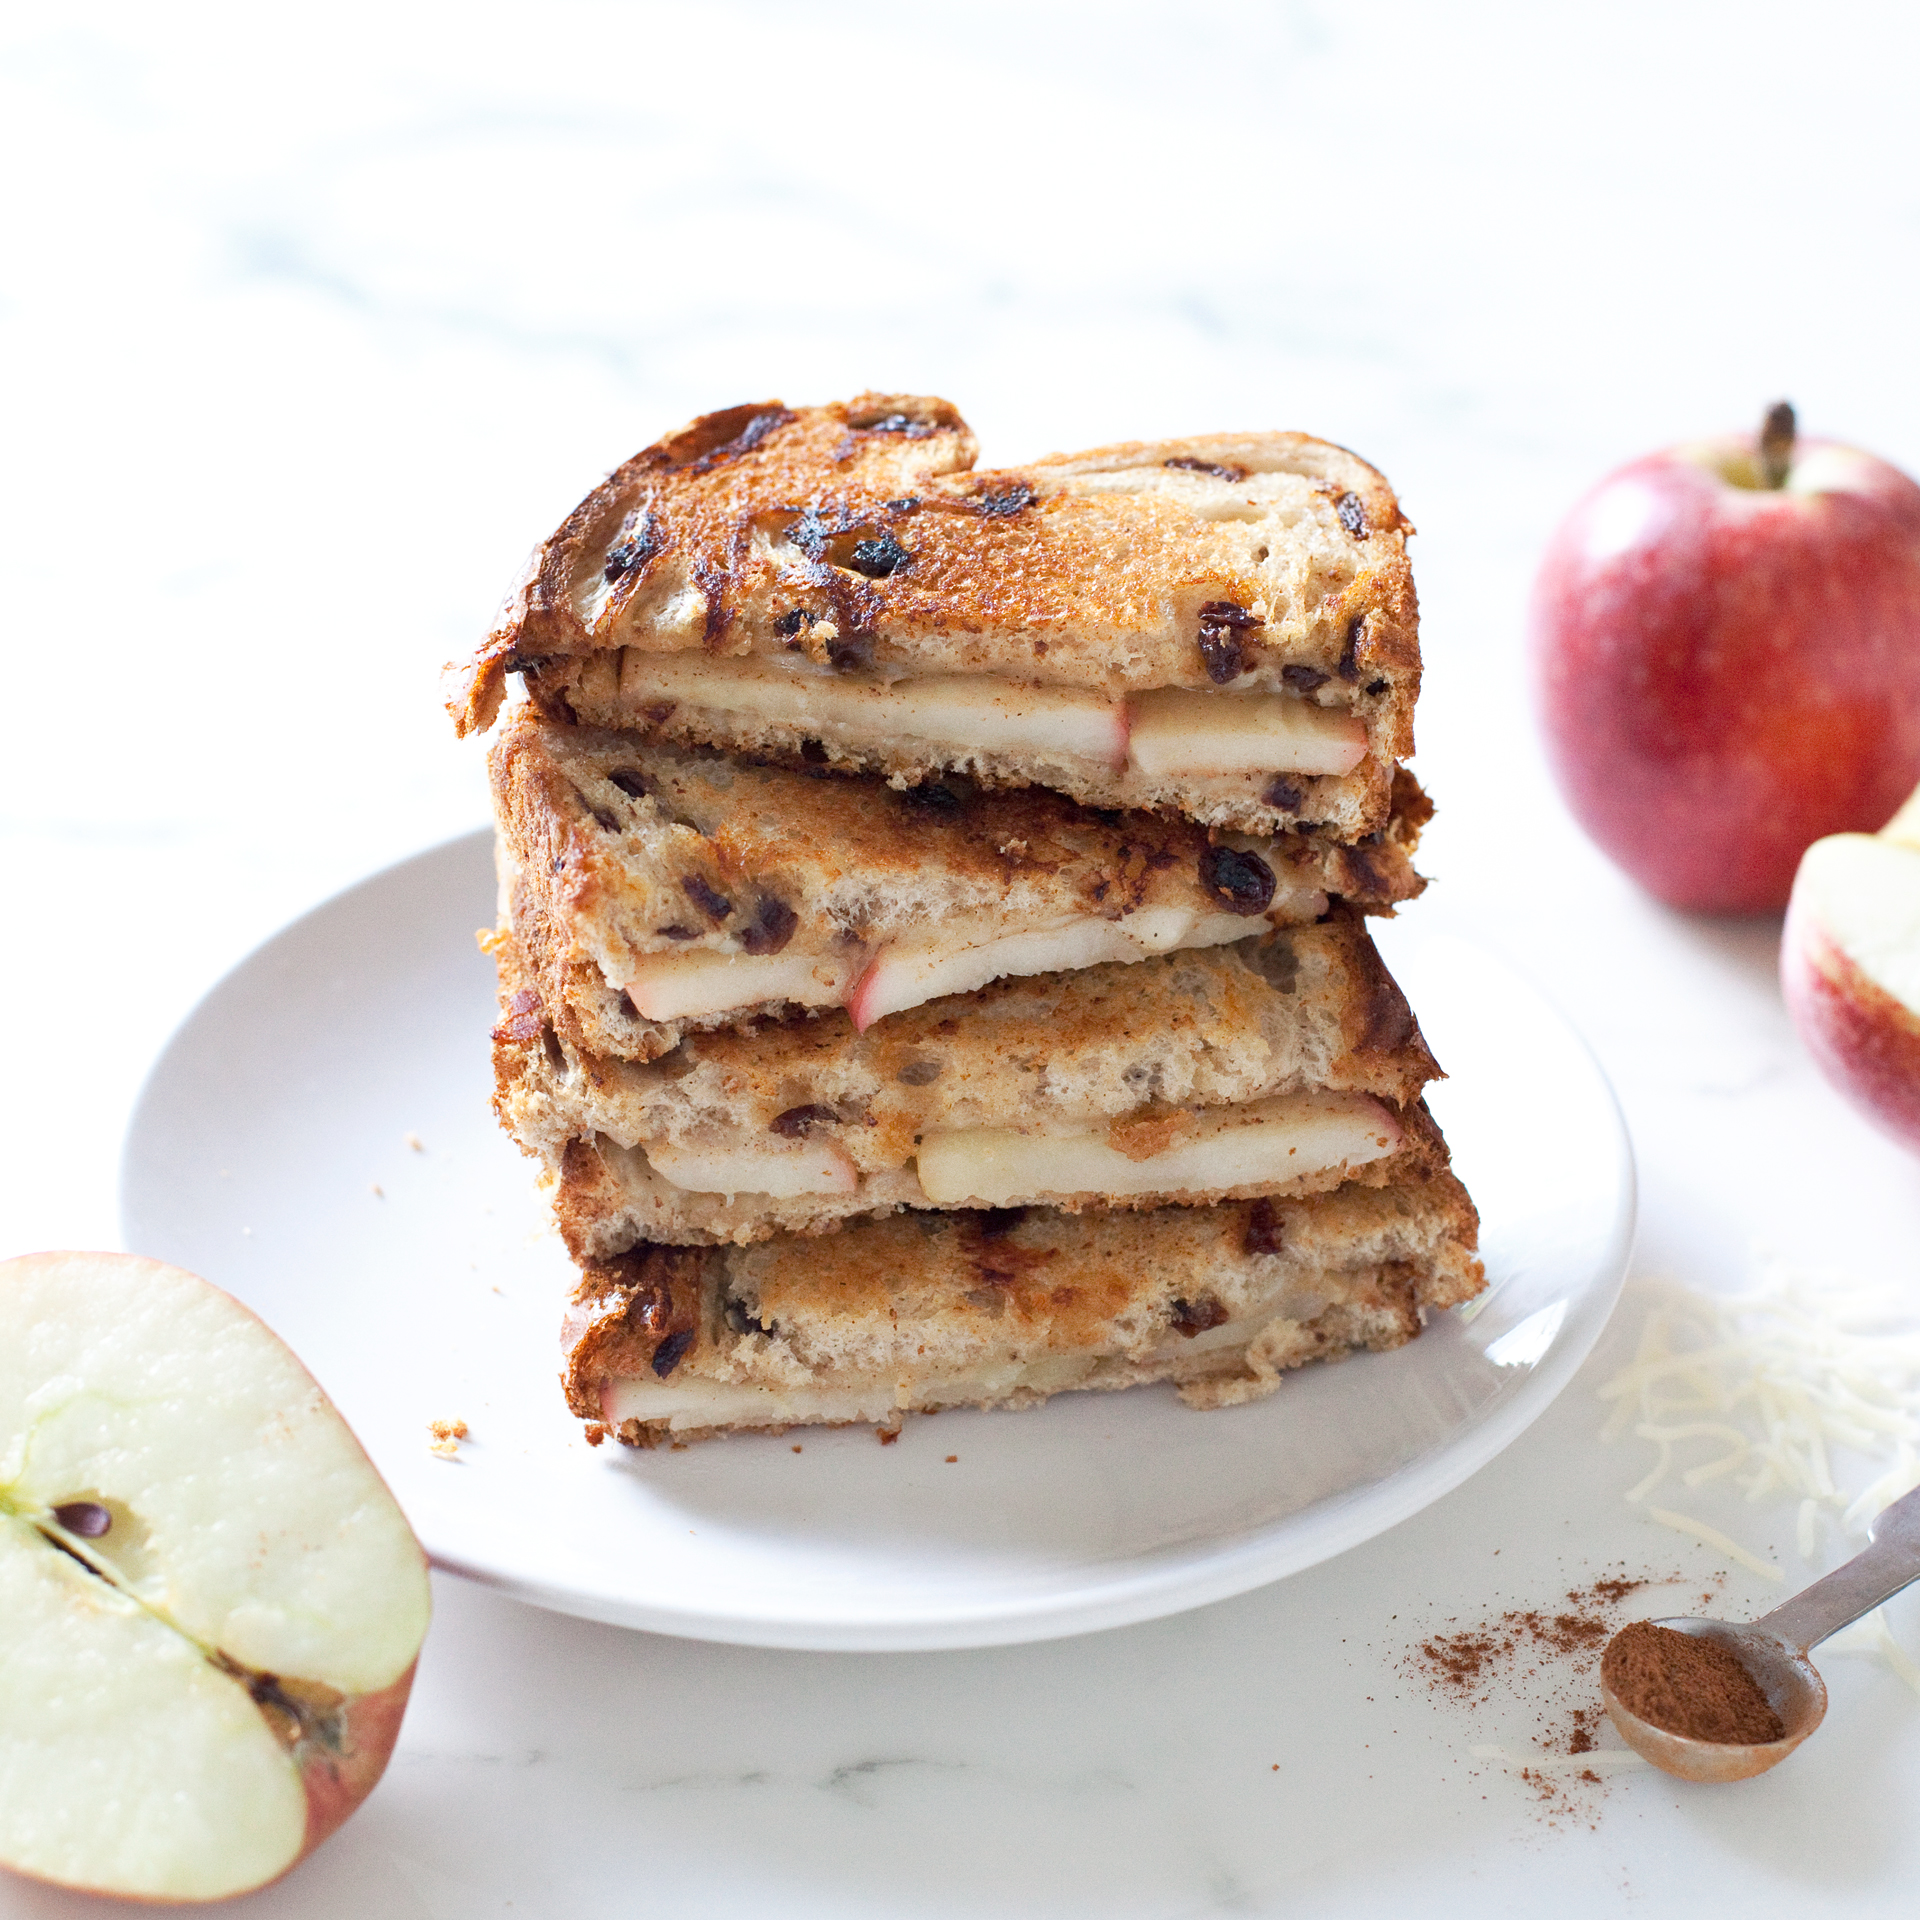 apple, cinnamon, and cheddar grilled cheese sandwiches